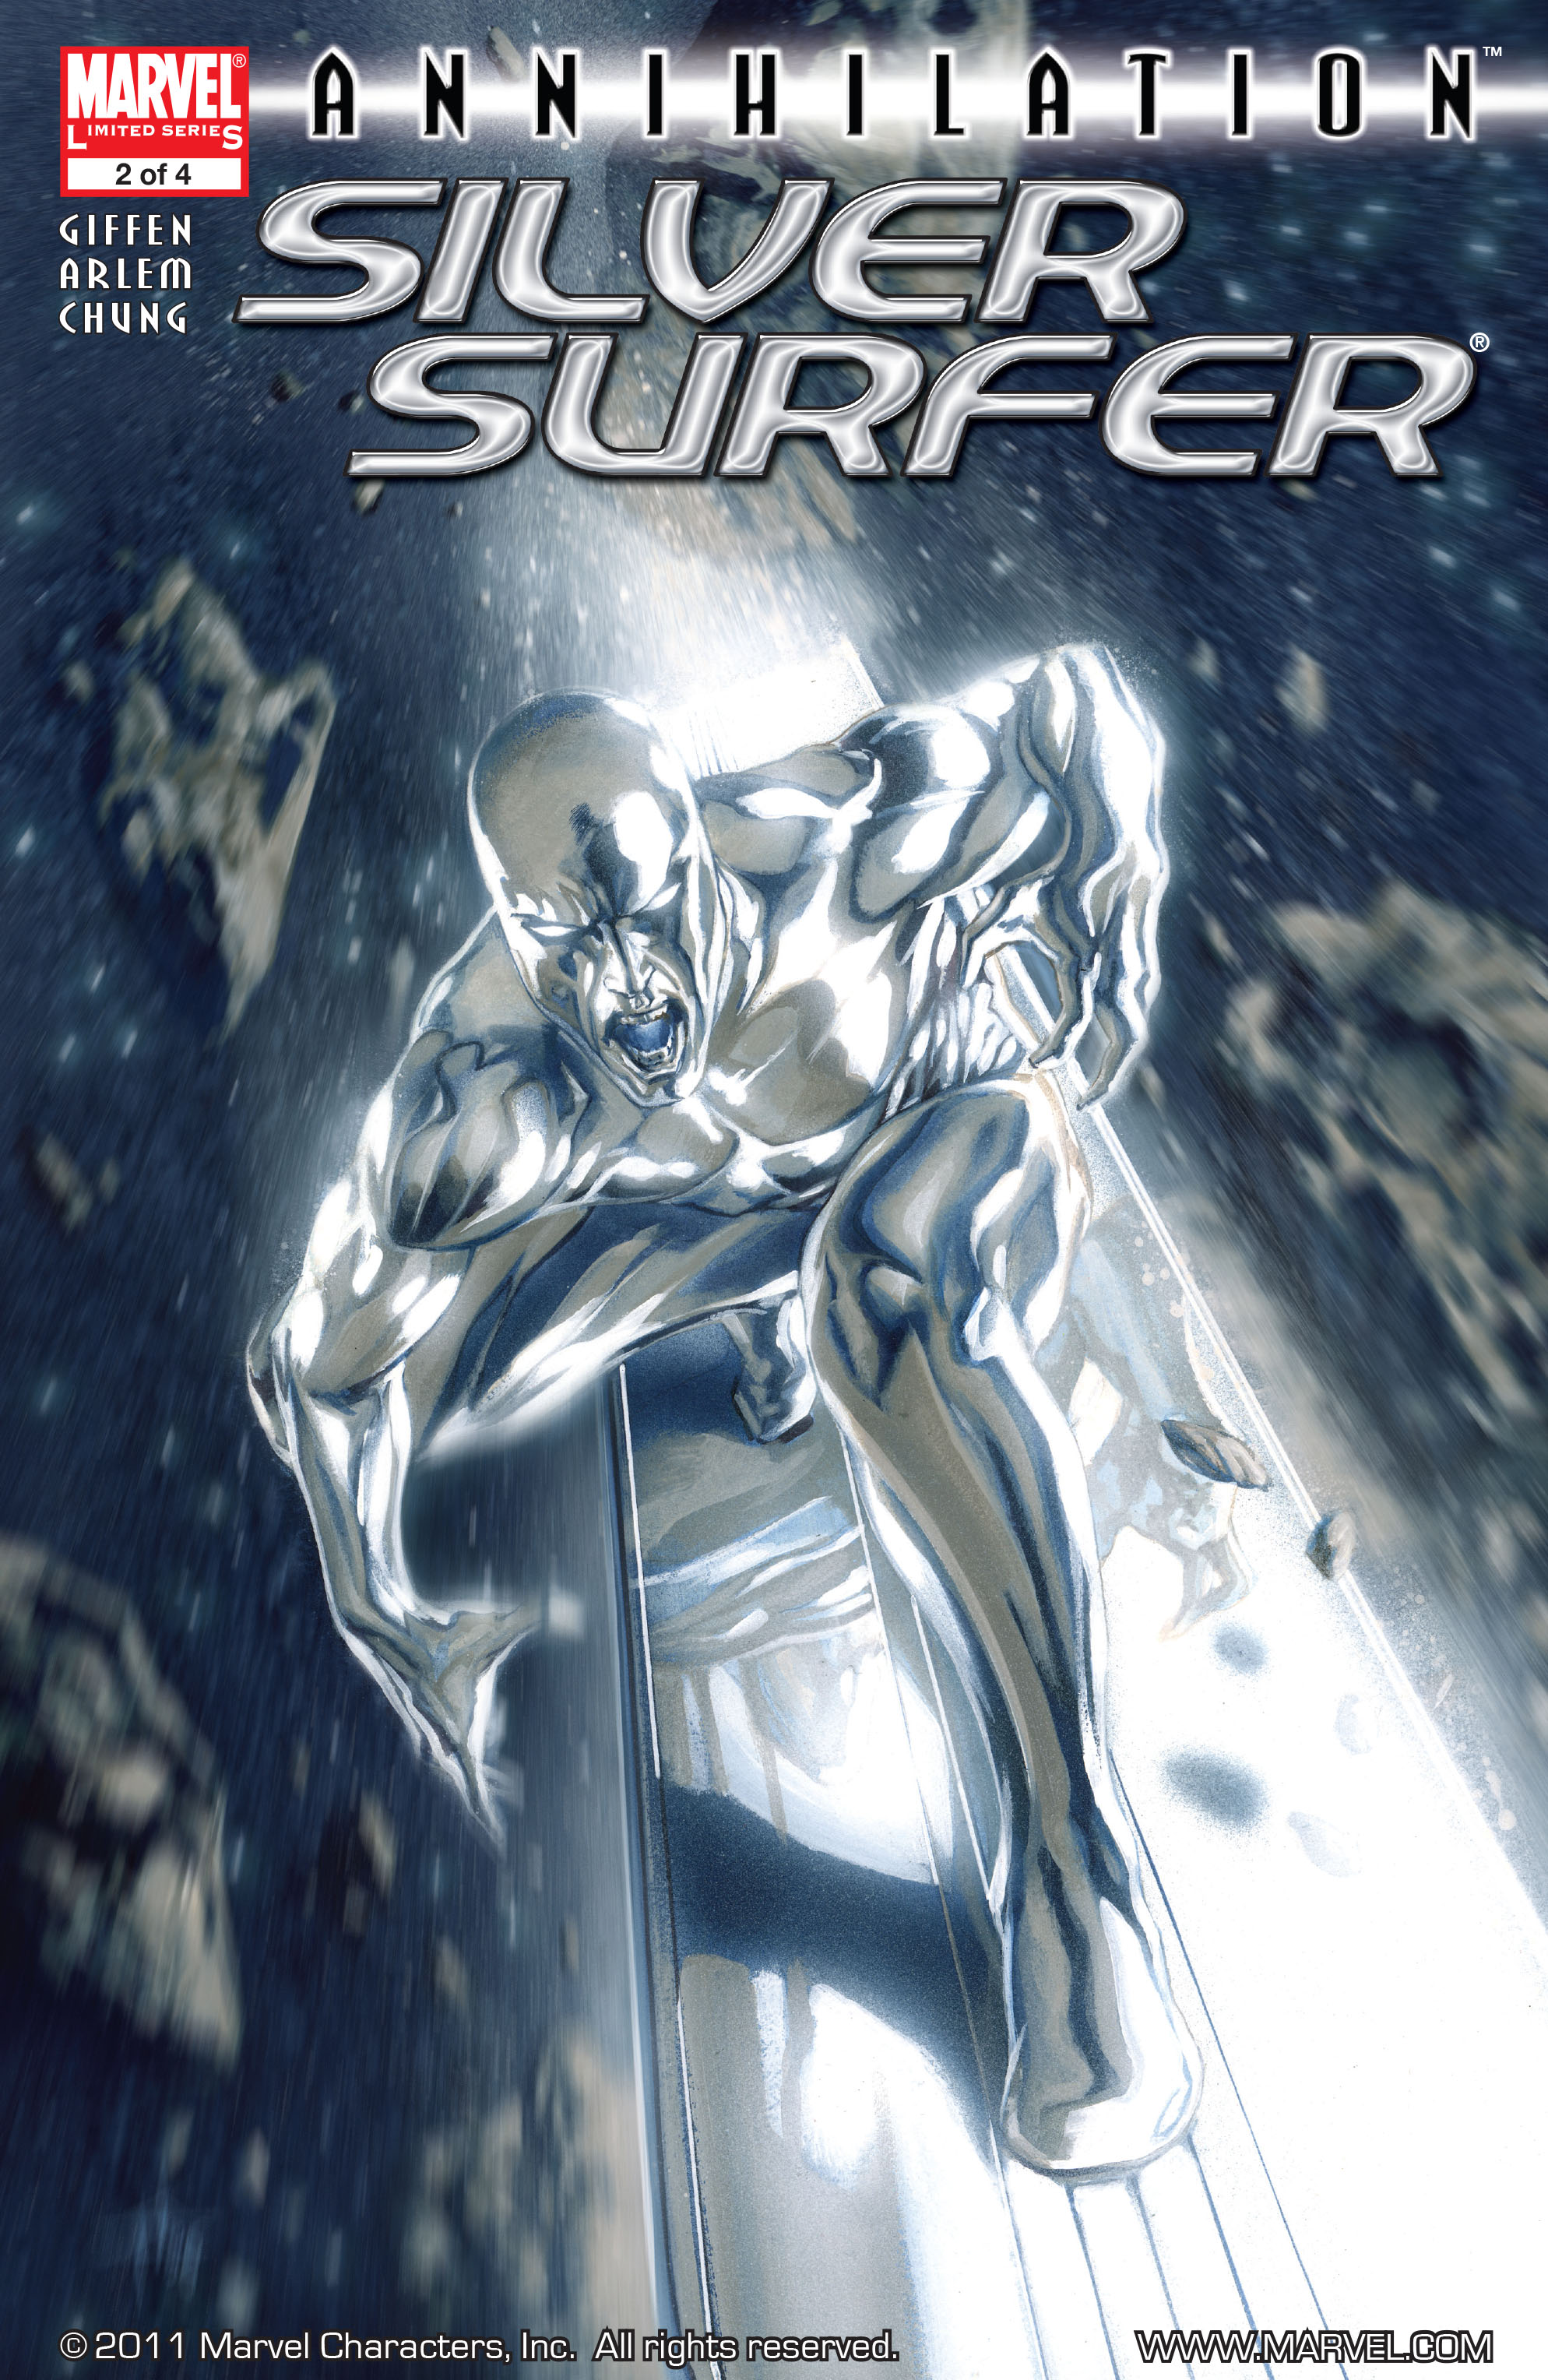 Read online Annihilation: Silver Surfer comic -  Issue #2 - 1